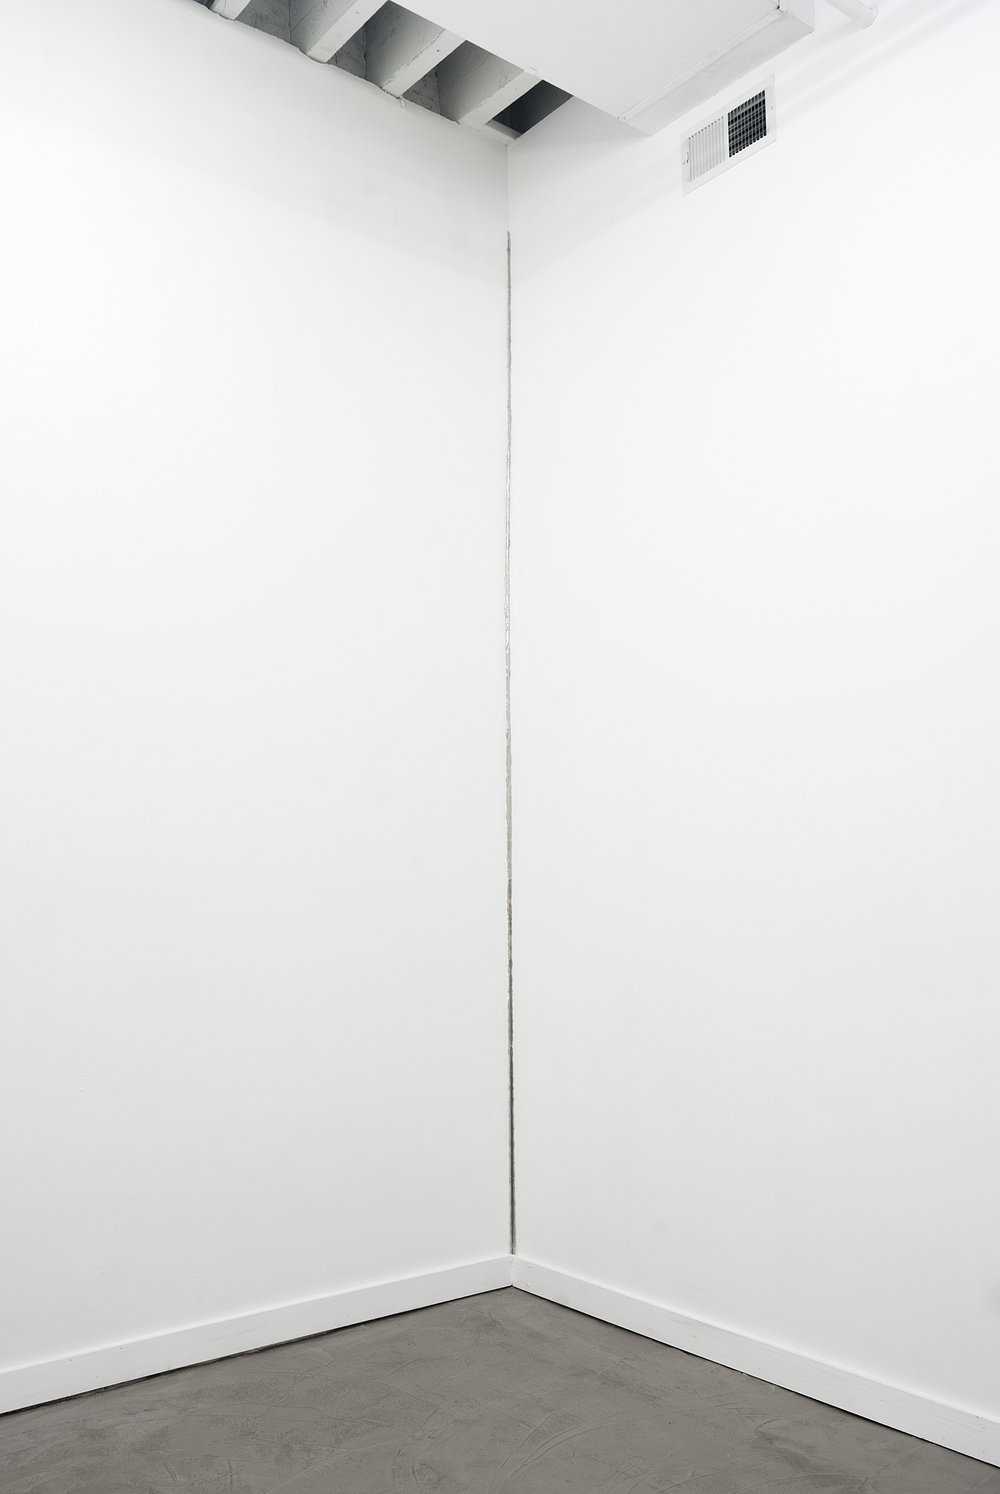 Corner, Nickel plated mirror polished steel, 110 X 3 inches, 2013